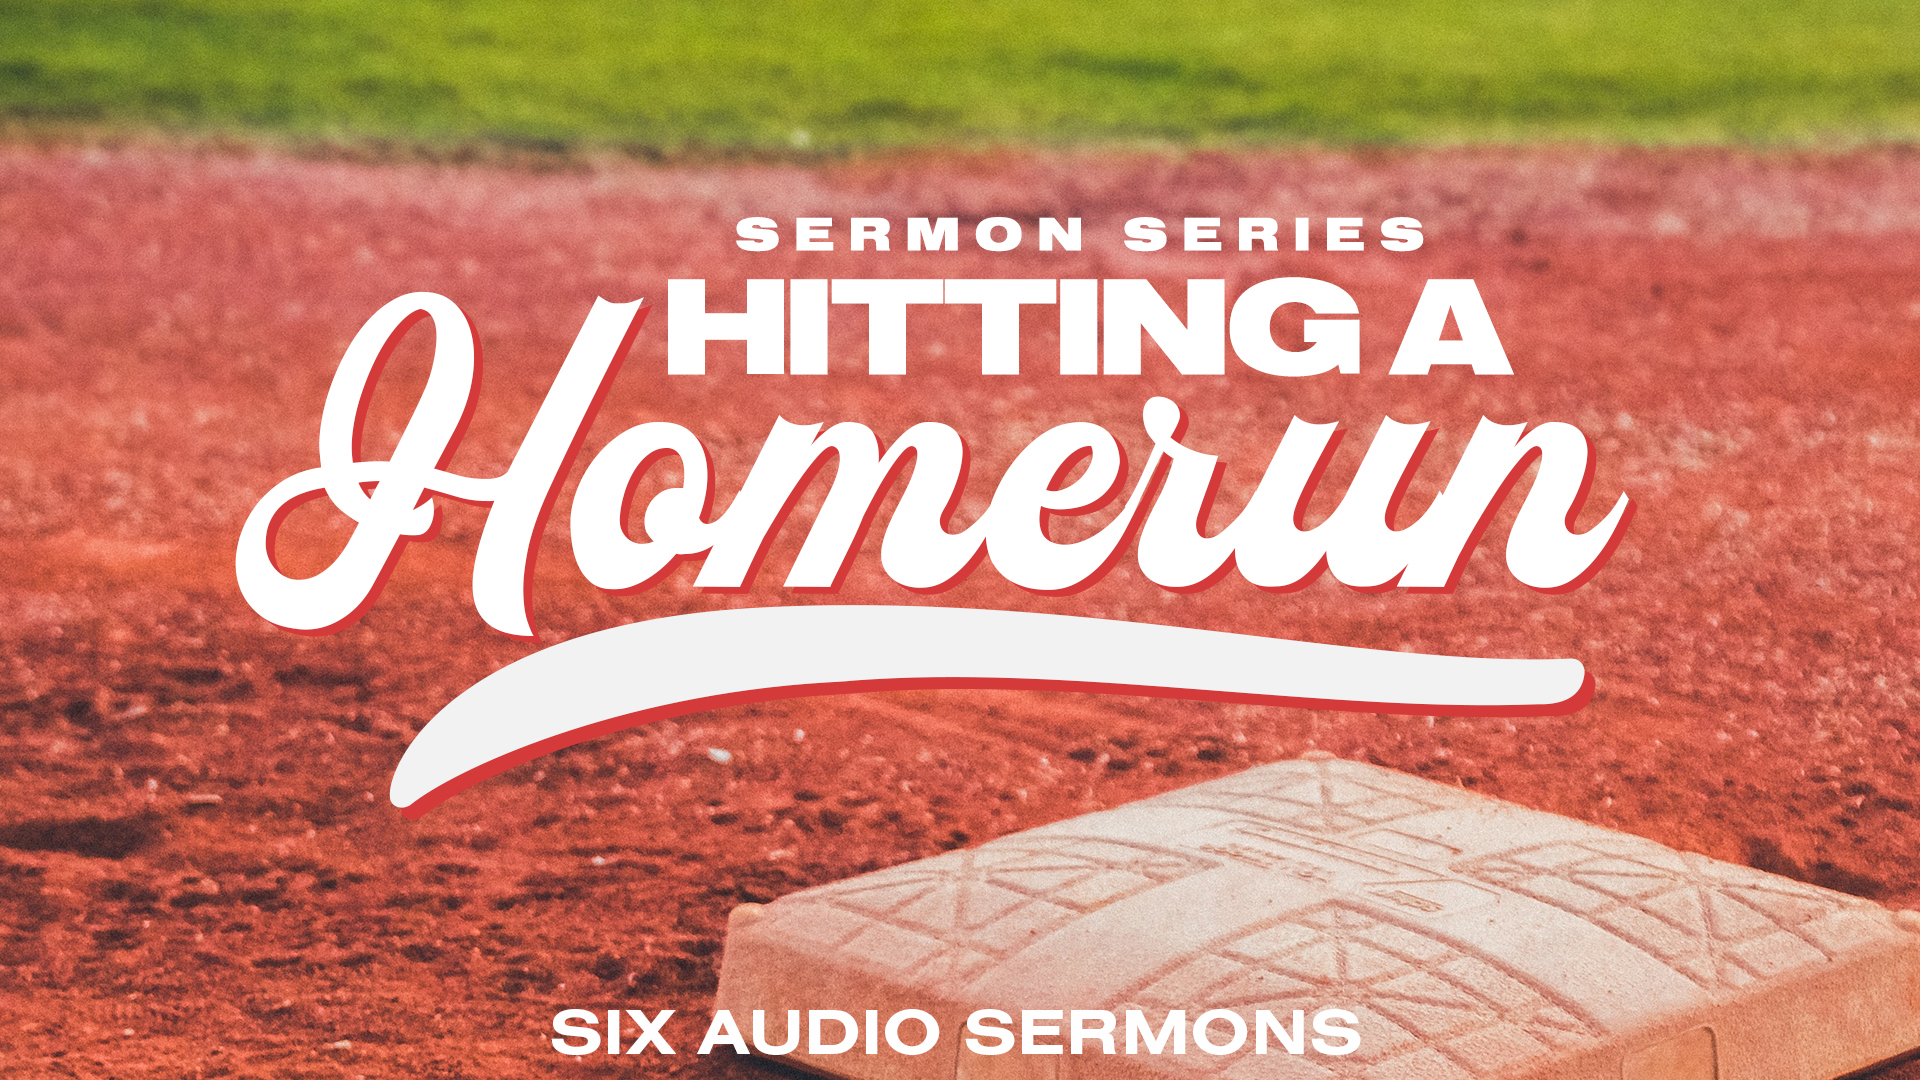 https://vladimirsavchuk.com/resources/hitting-a-home-run-audio-series/